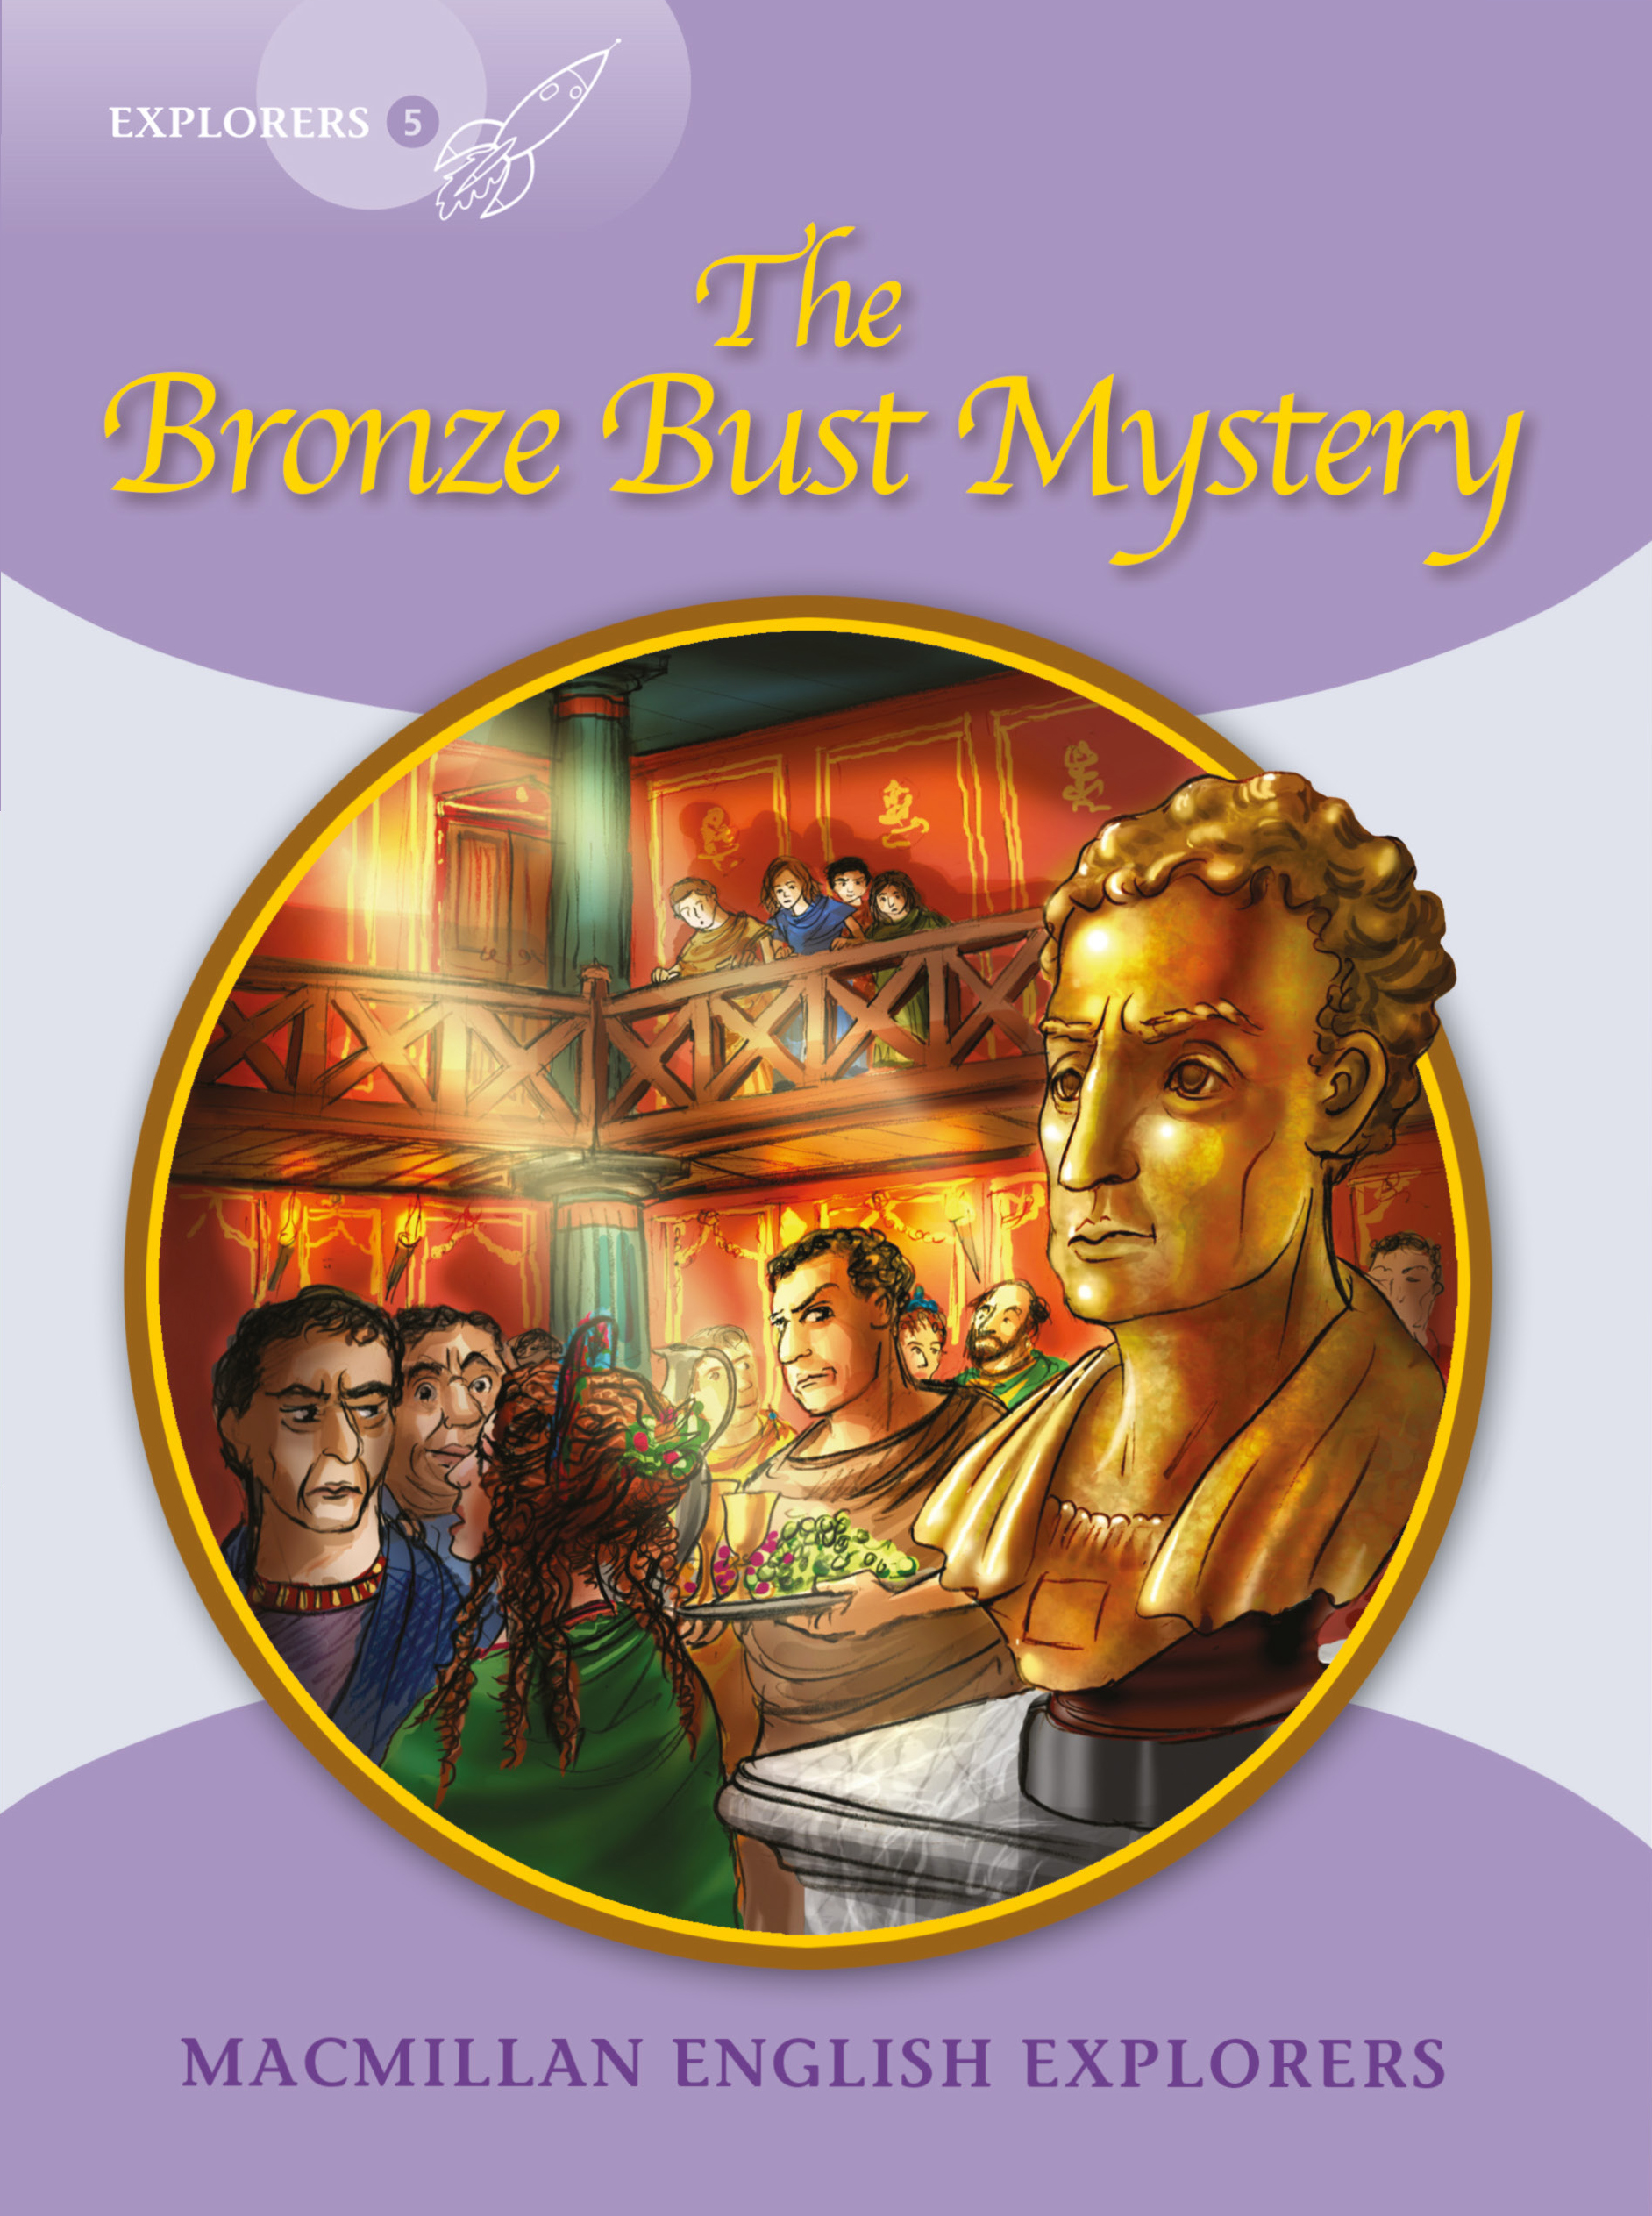 Explorers 5: The Bronze Bust Mystery